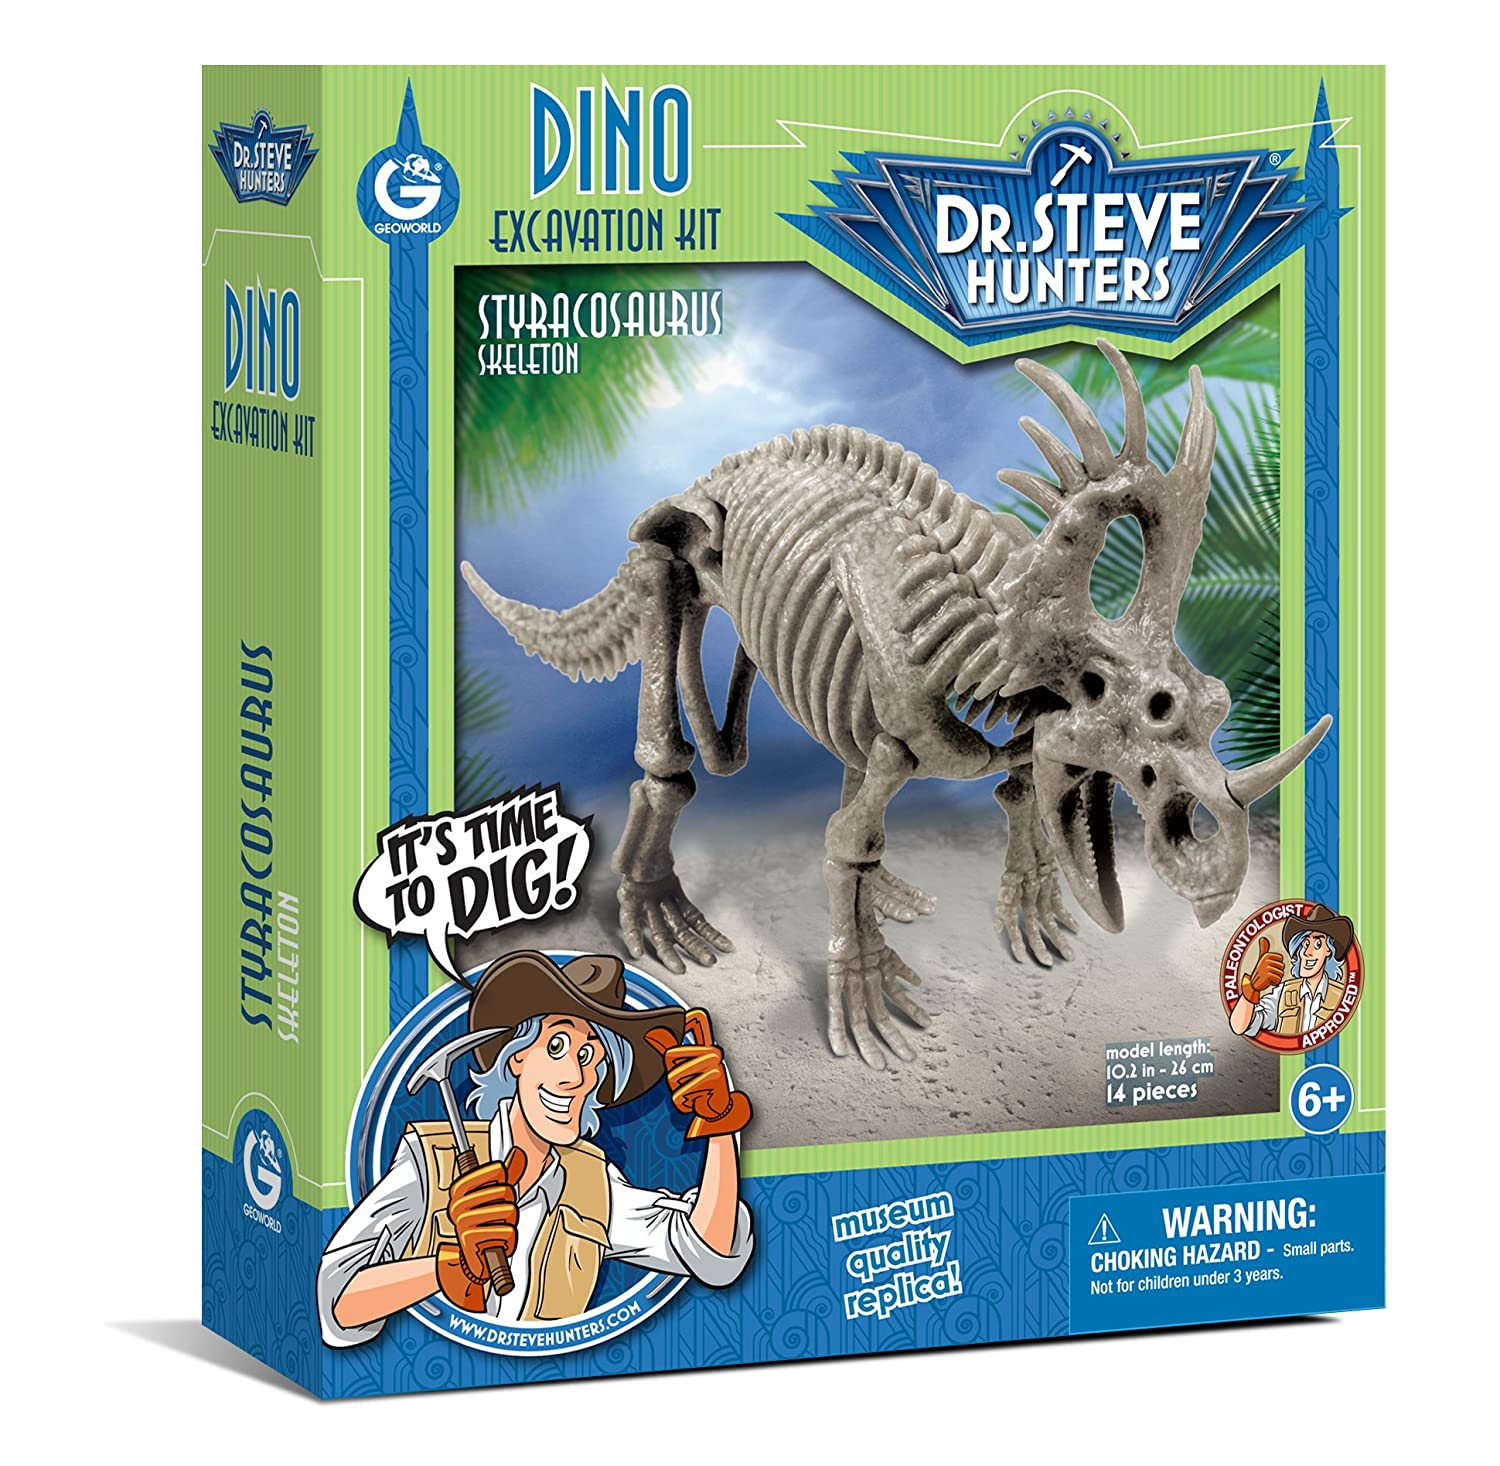 Geoworld Dino Styracosaurus Skeleton Excavation Kit